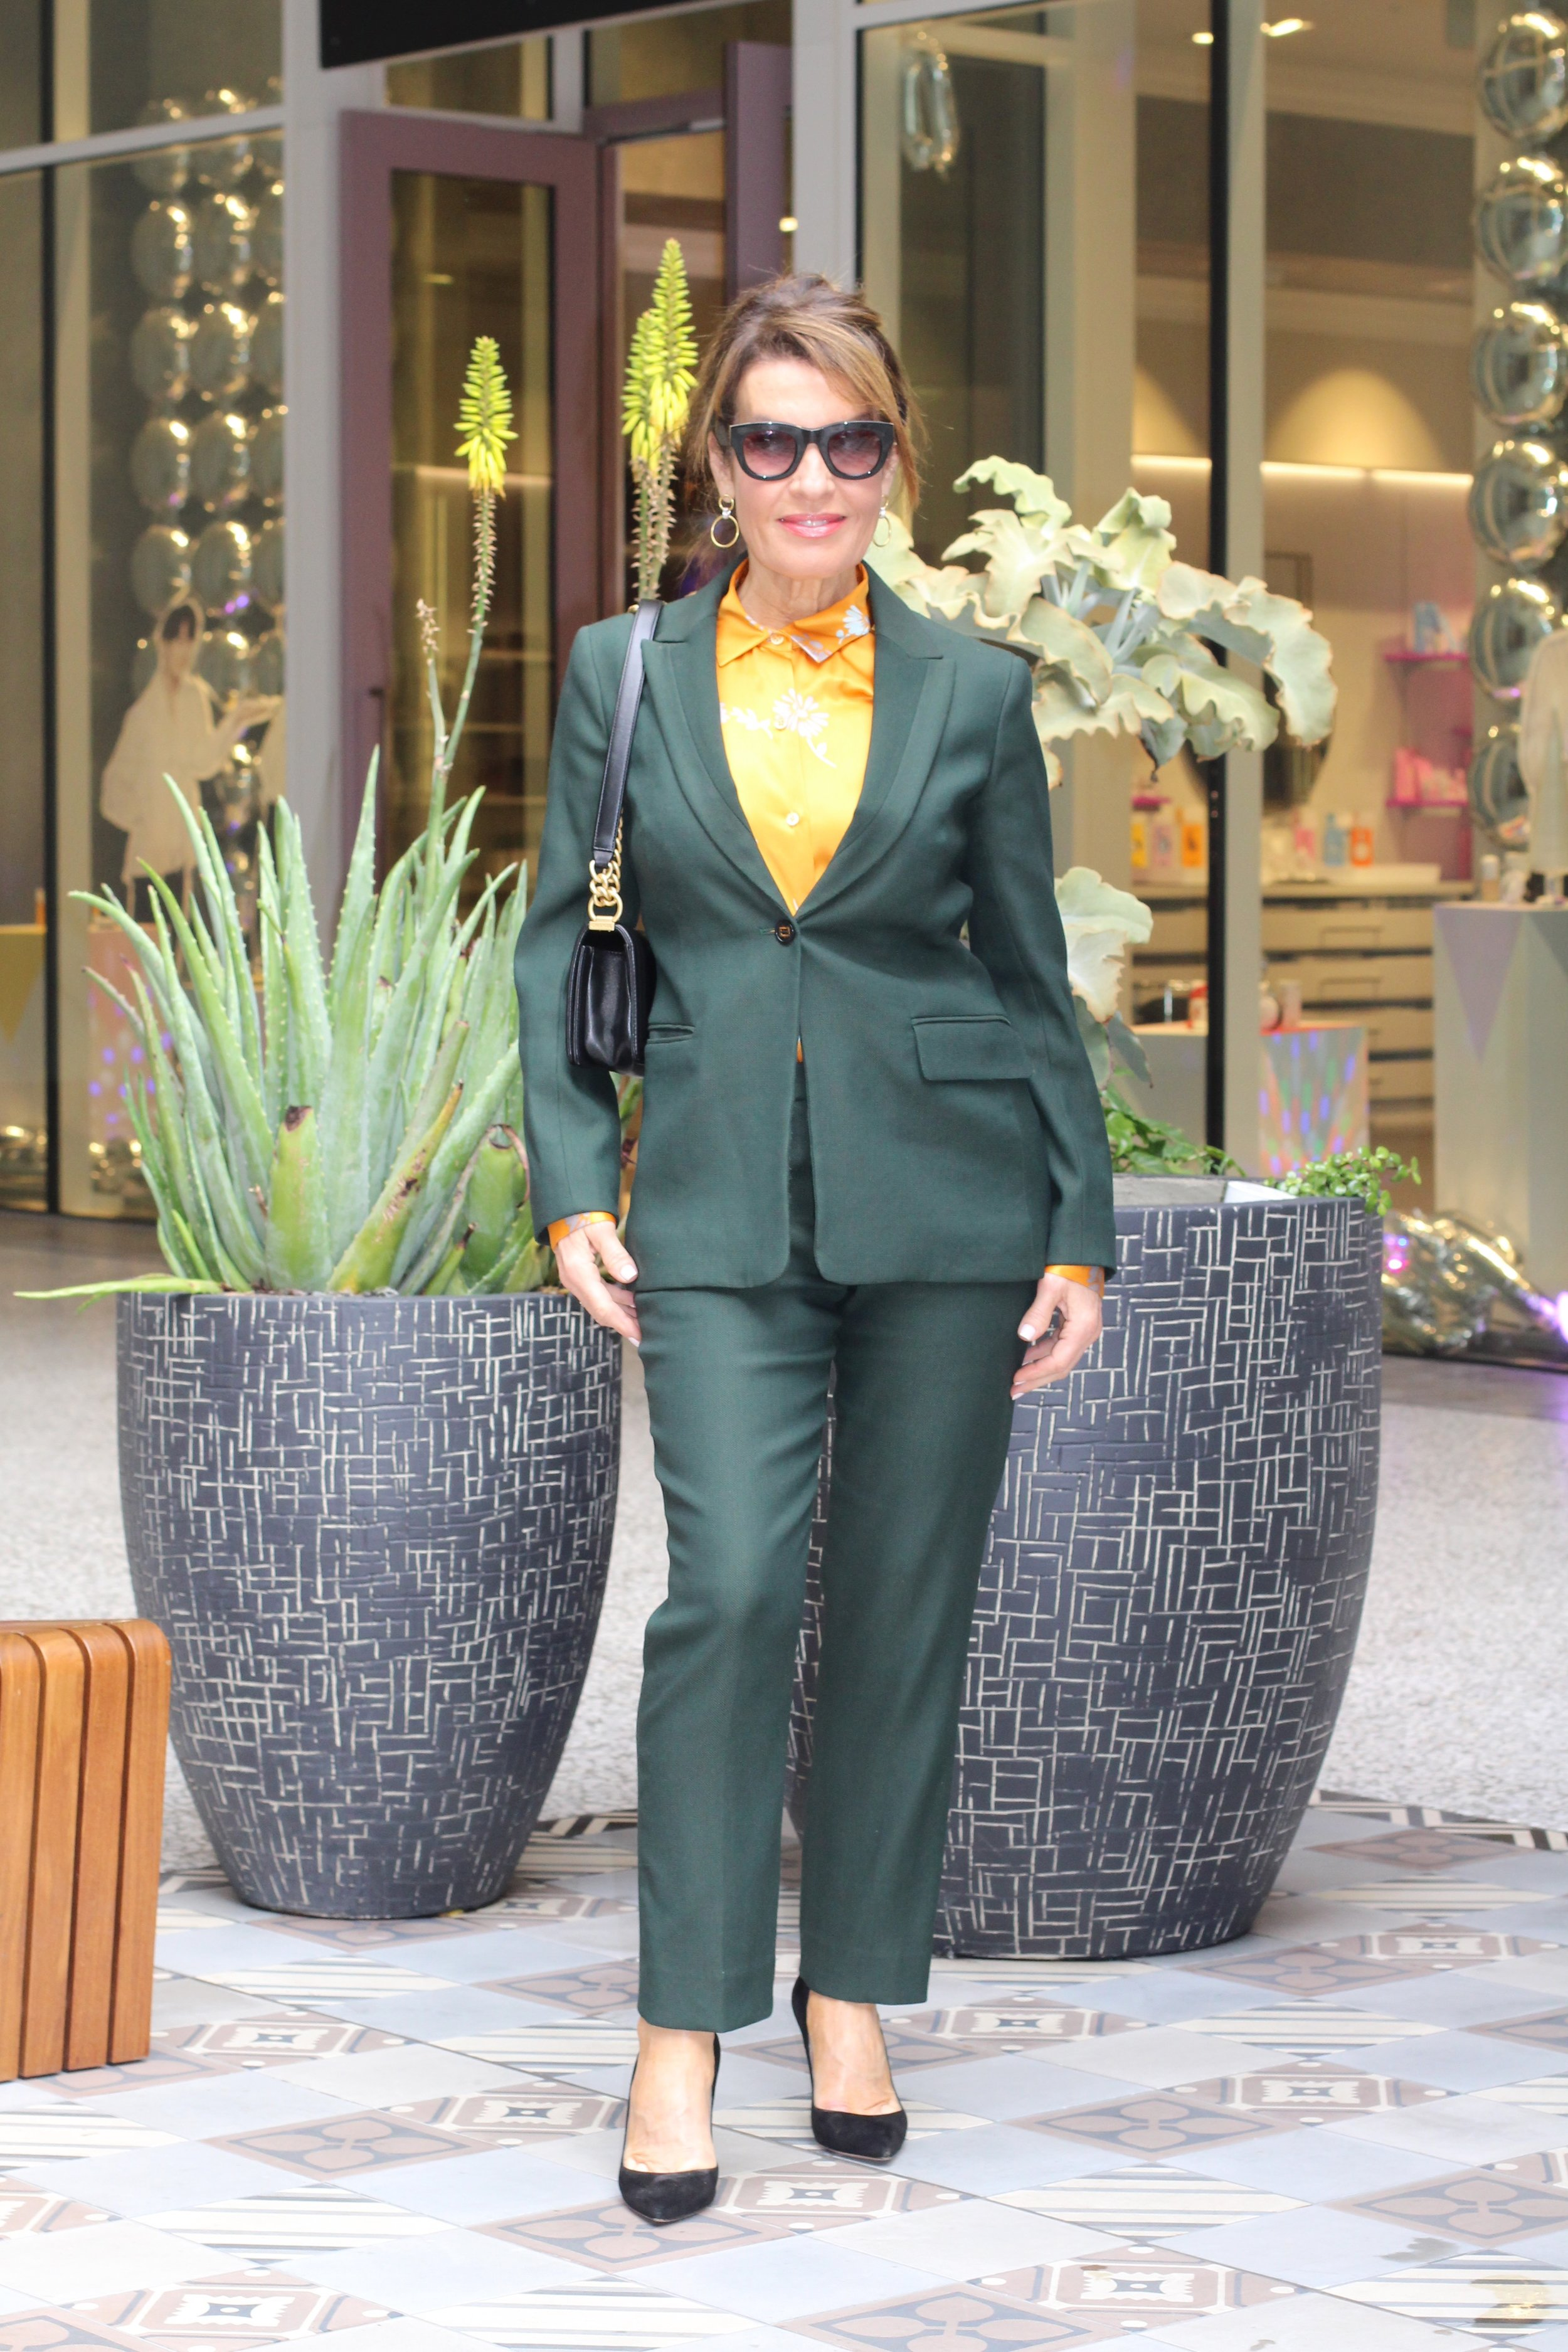 The Row jacket and pants,    Equipment blouse   , Gianvanito Rossi shoes, Chanel handbag    similar for less here   , Celine Sunglasses, Madewell earrings